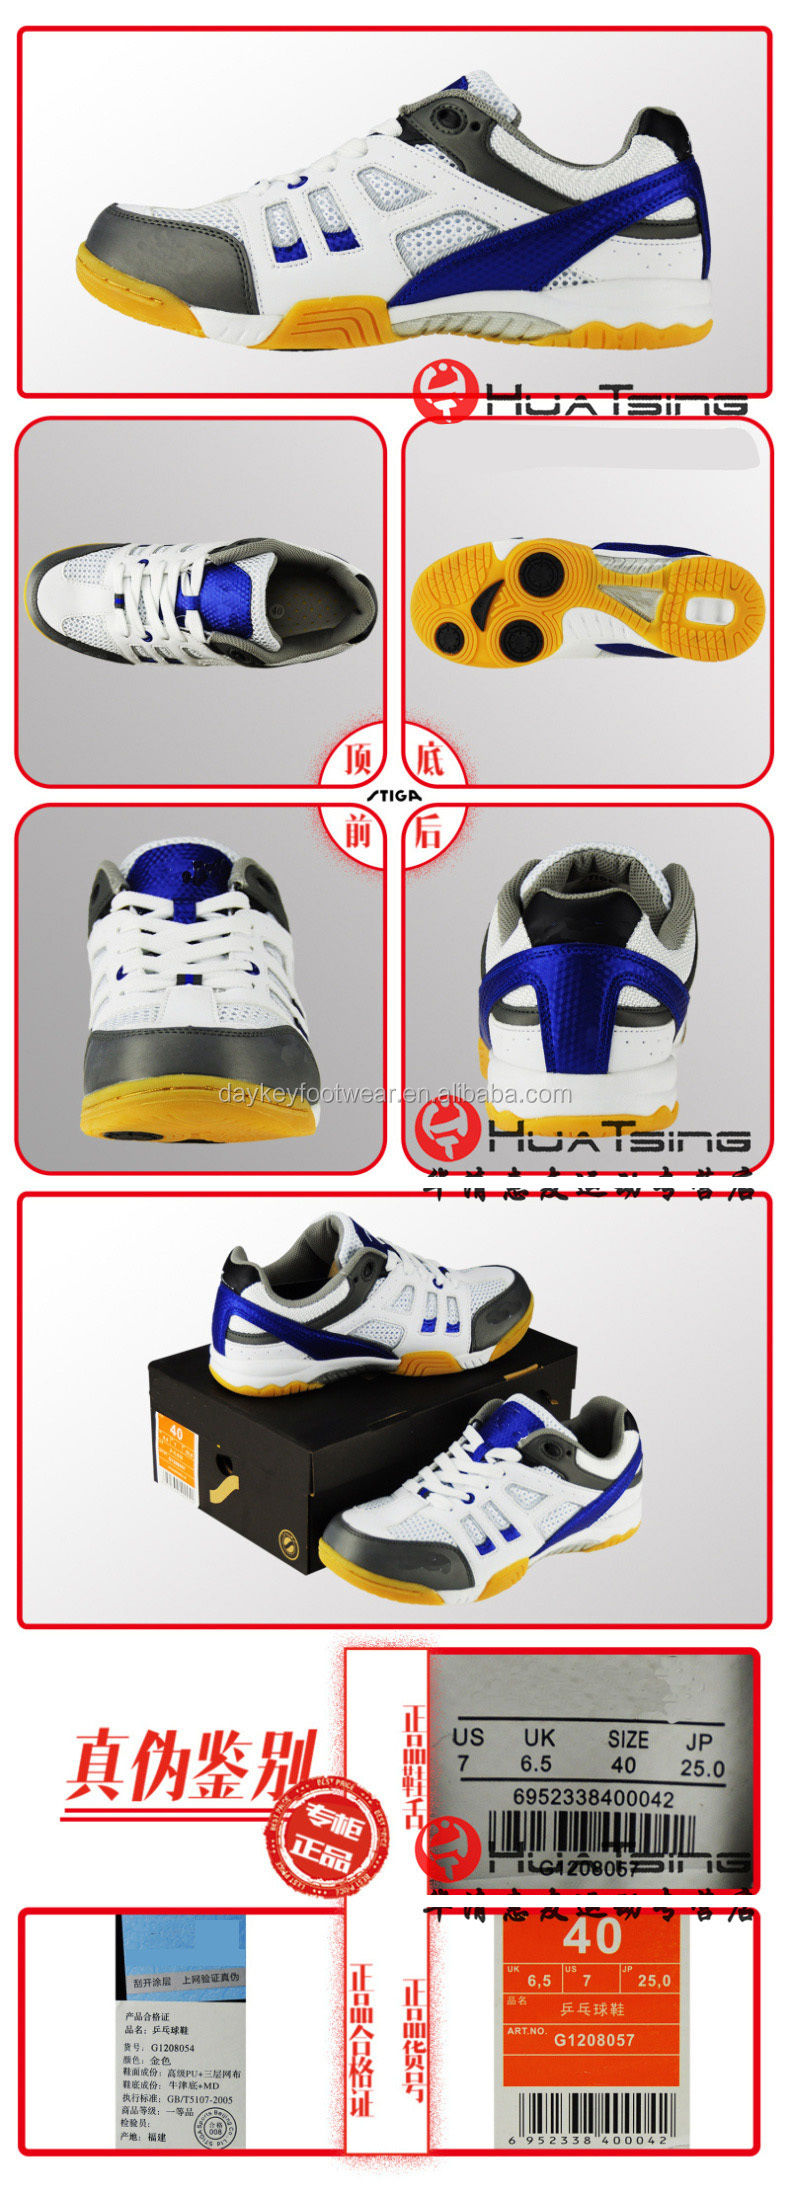 newest hot selling tennis sport shoes for man men table tennis shoes